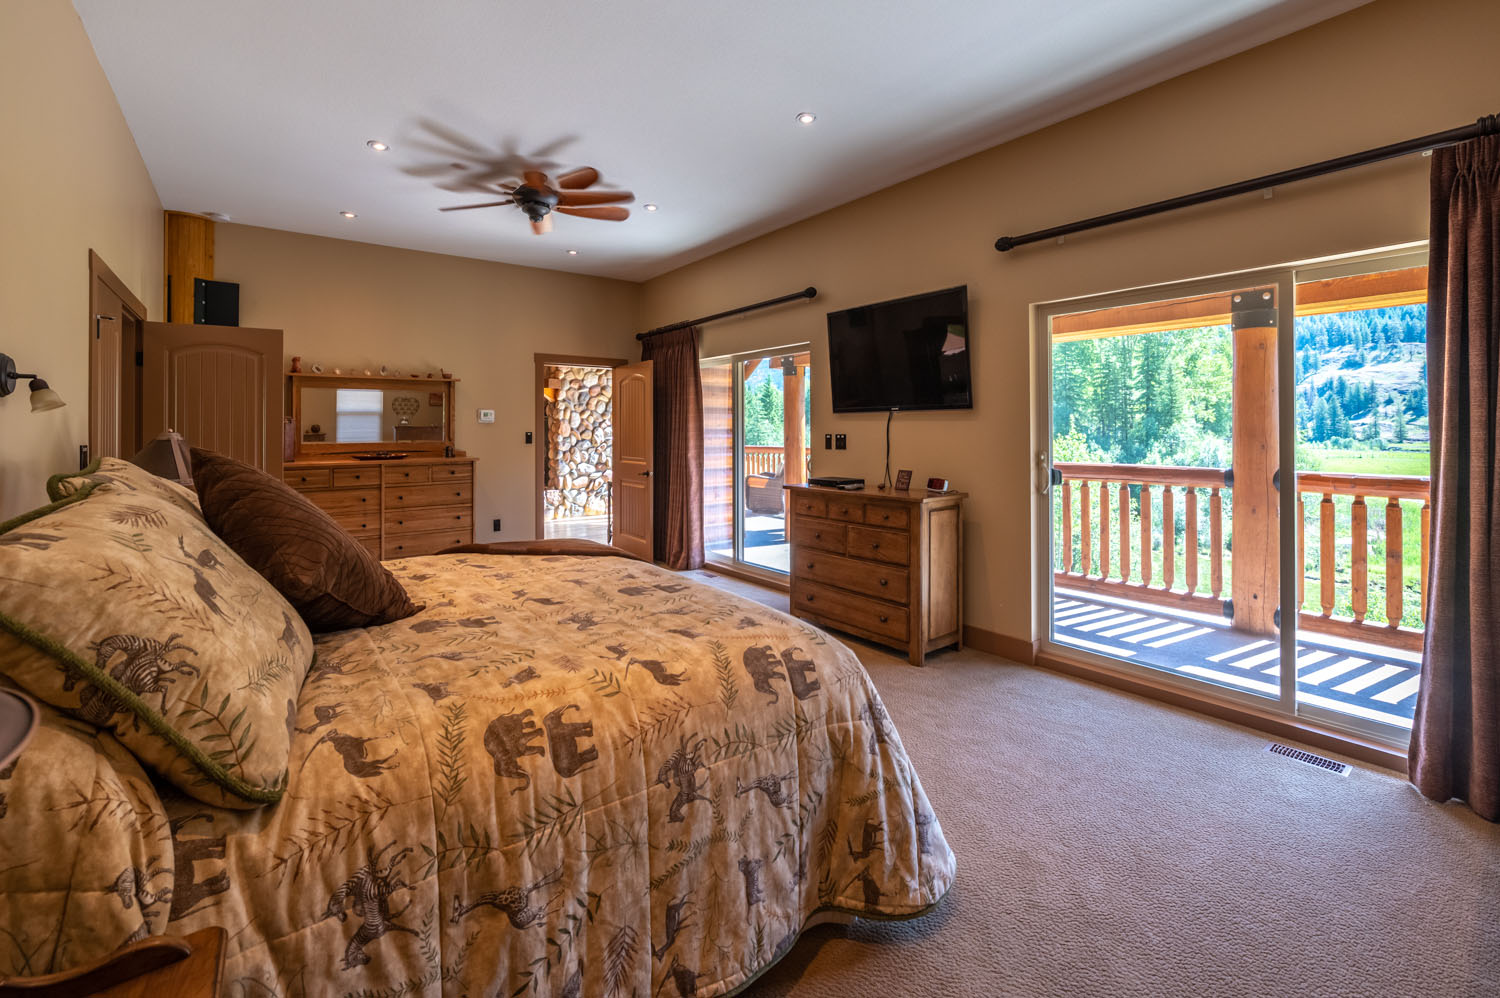 Willow springs ranch 29